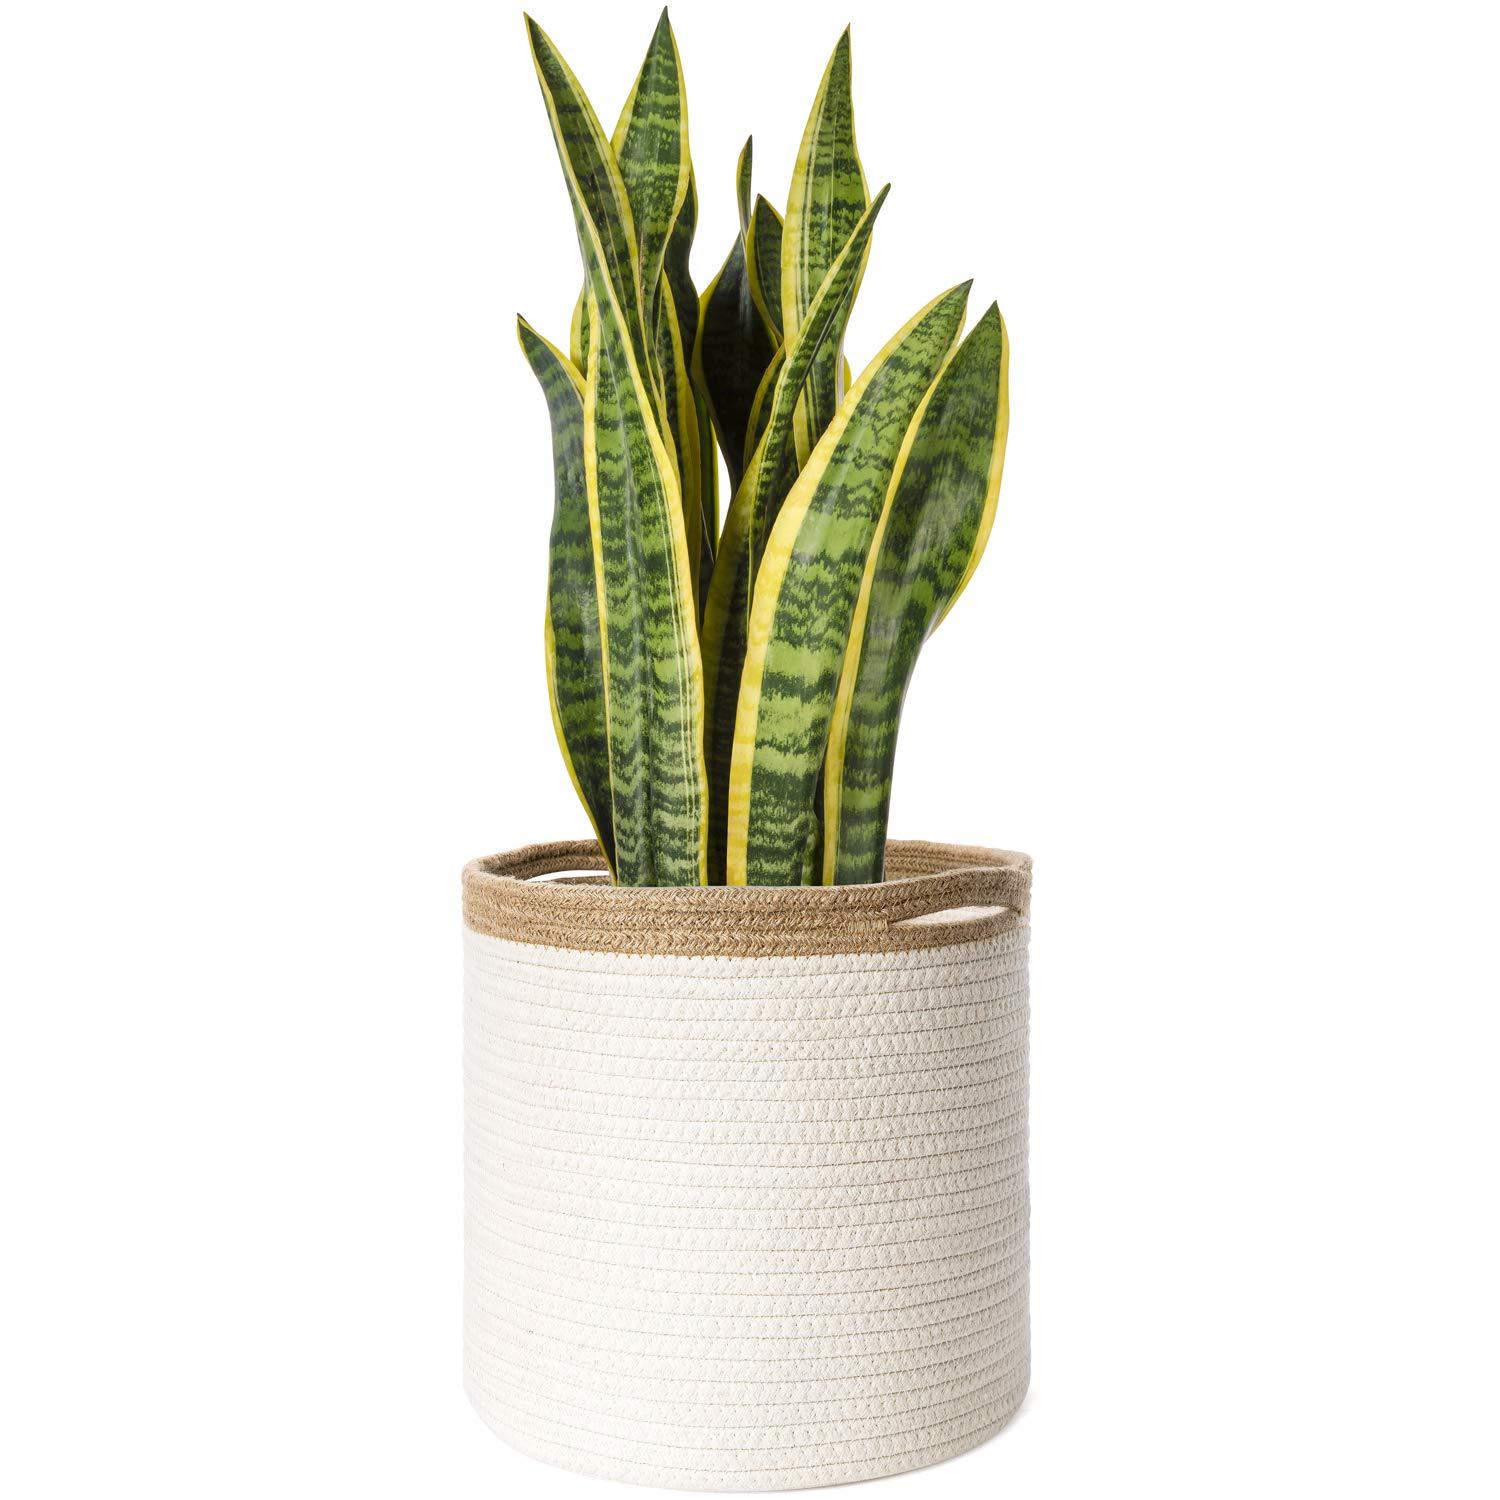 """Mkono Cotton Seamed Jute Rope Plant Basket Modern Floor Indoor Planter Cover Up to 10 Inch Flower Pot Woven Storage Organizer with Handles Decorative Home Decor, 11"""" x 11"""""""